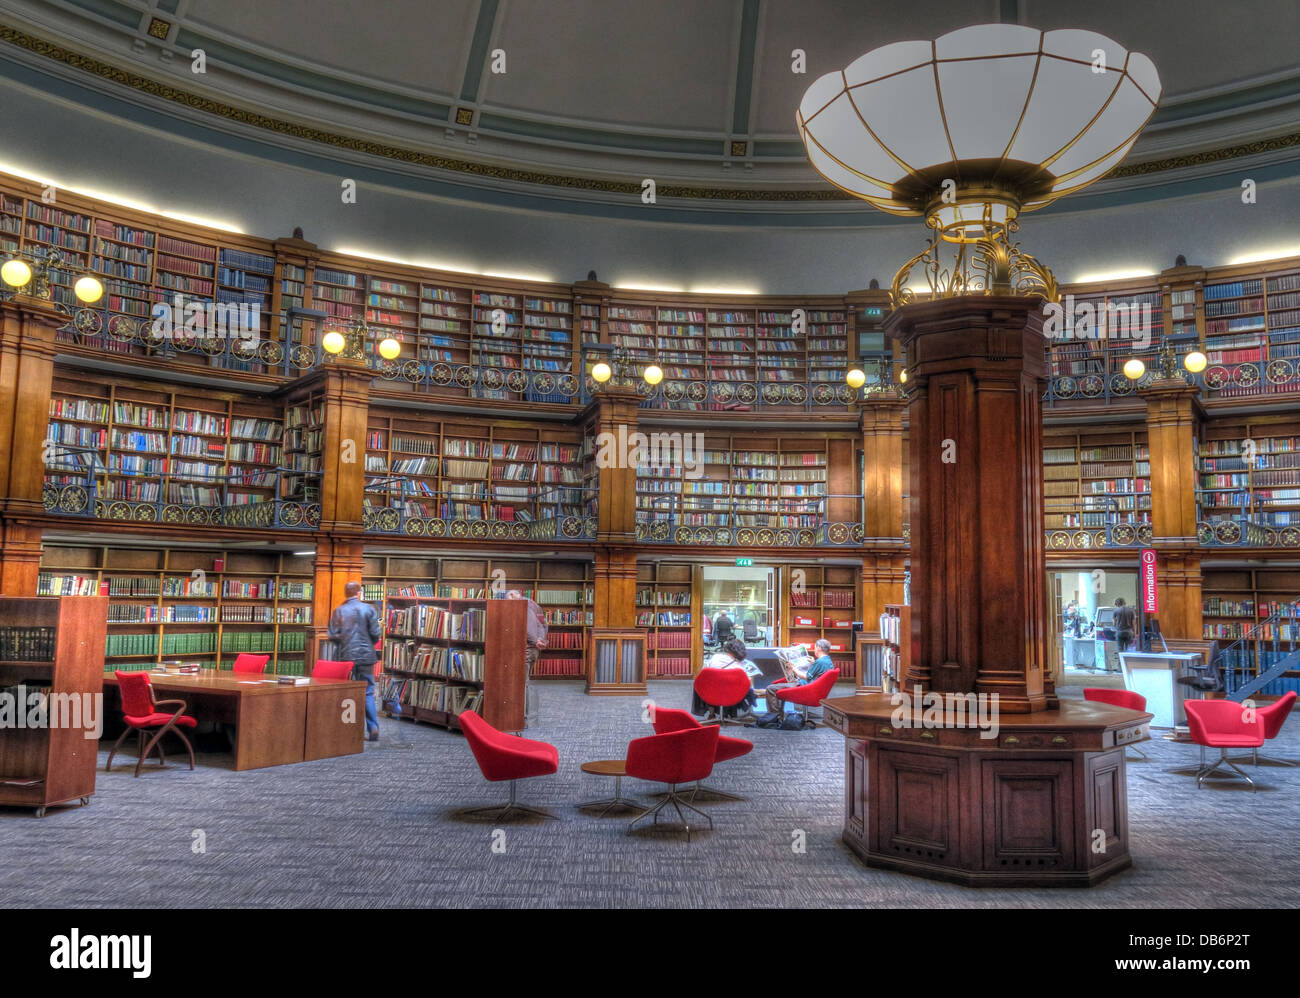 Liverpool Central Library, Picton reading room interior , Merseyside England UK - Stock Image